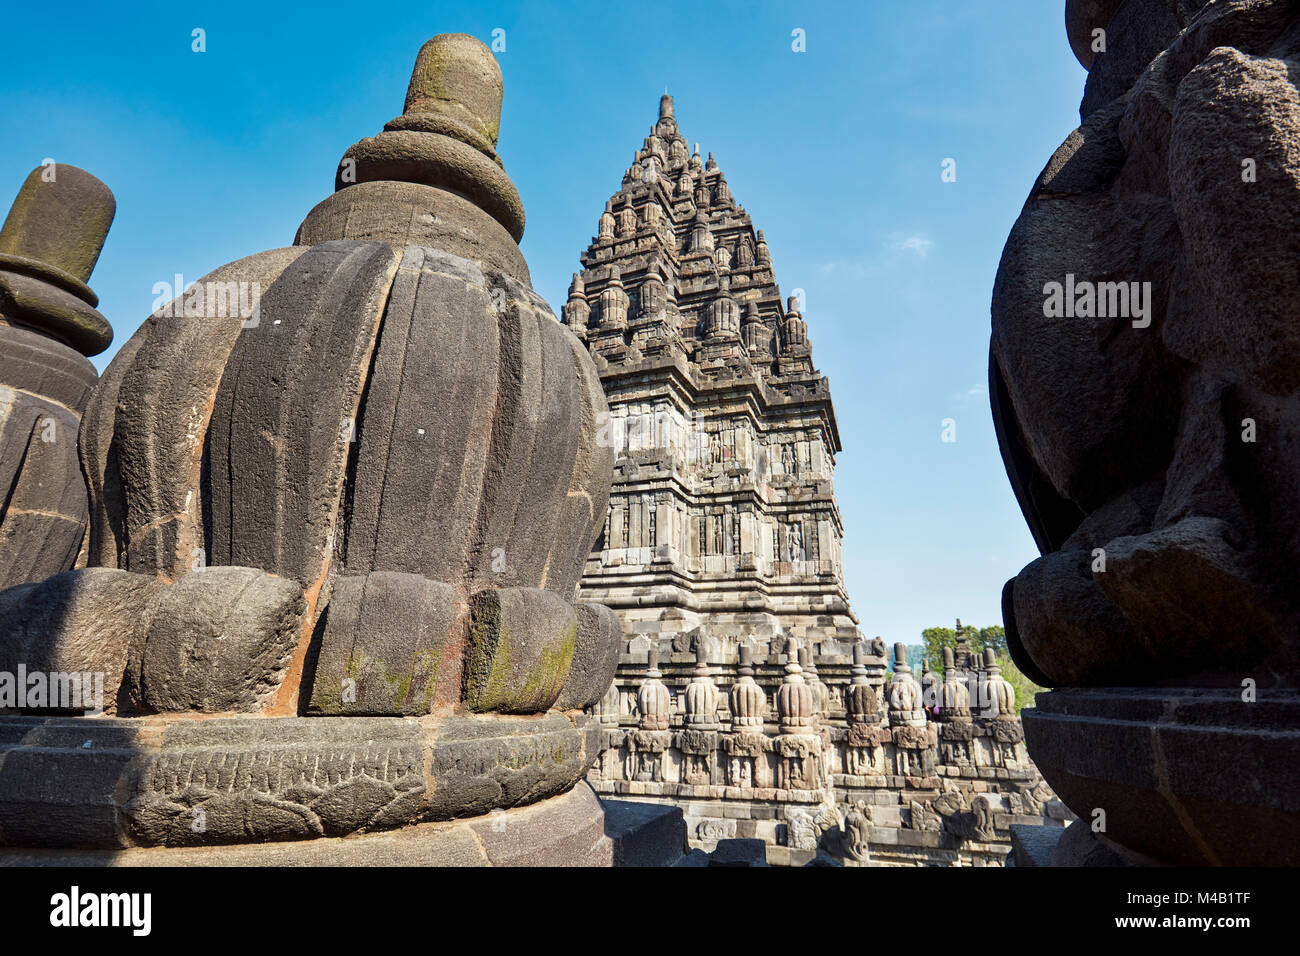 Stone carved temple architectural detail. Prambanan Hindu Temple Compound, Special Region of Yogyakarta, Java, Indonesia. - Stock Image